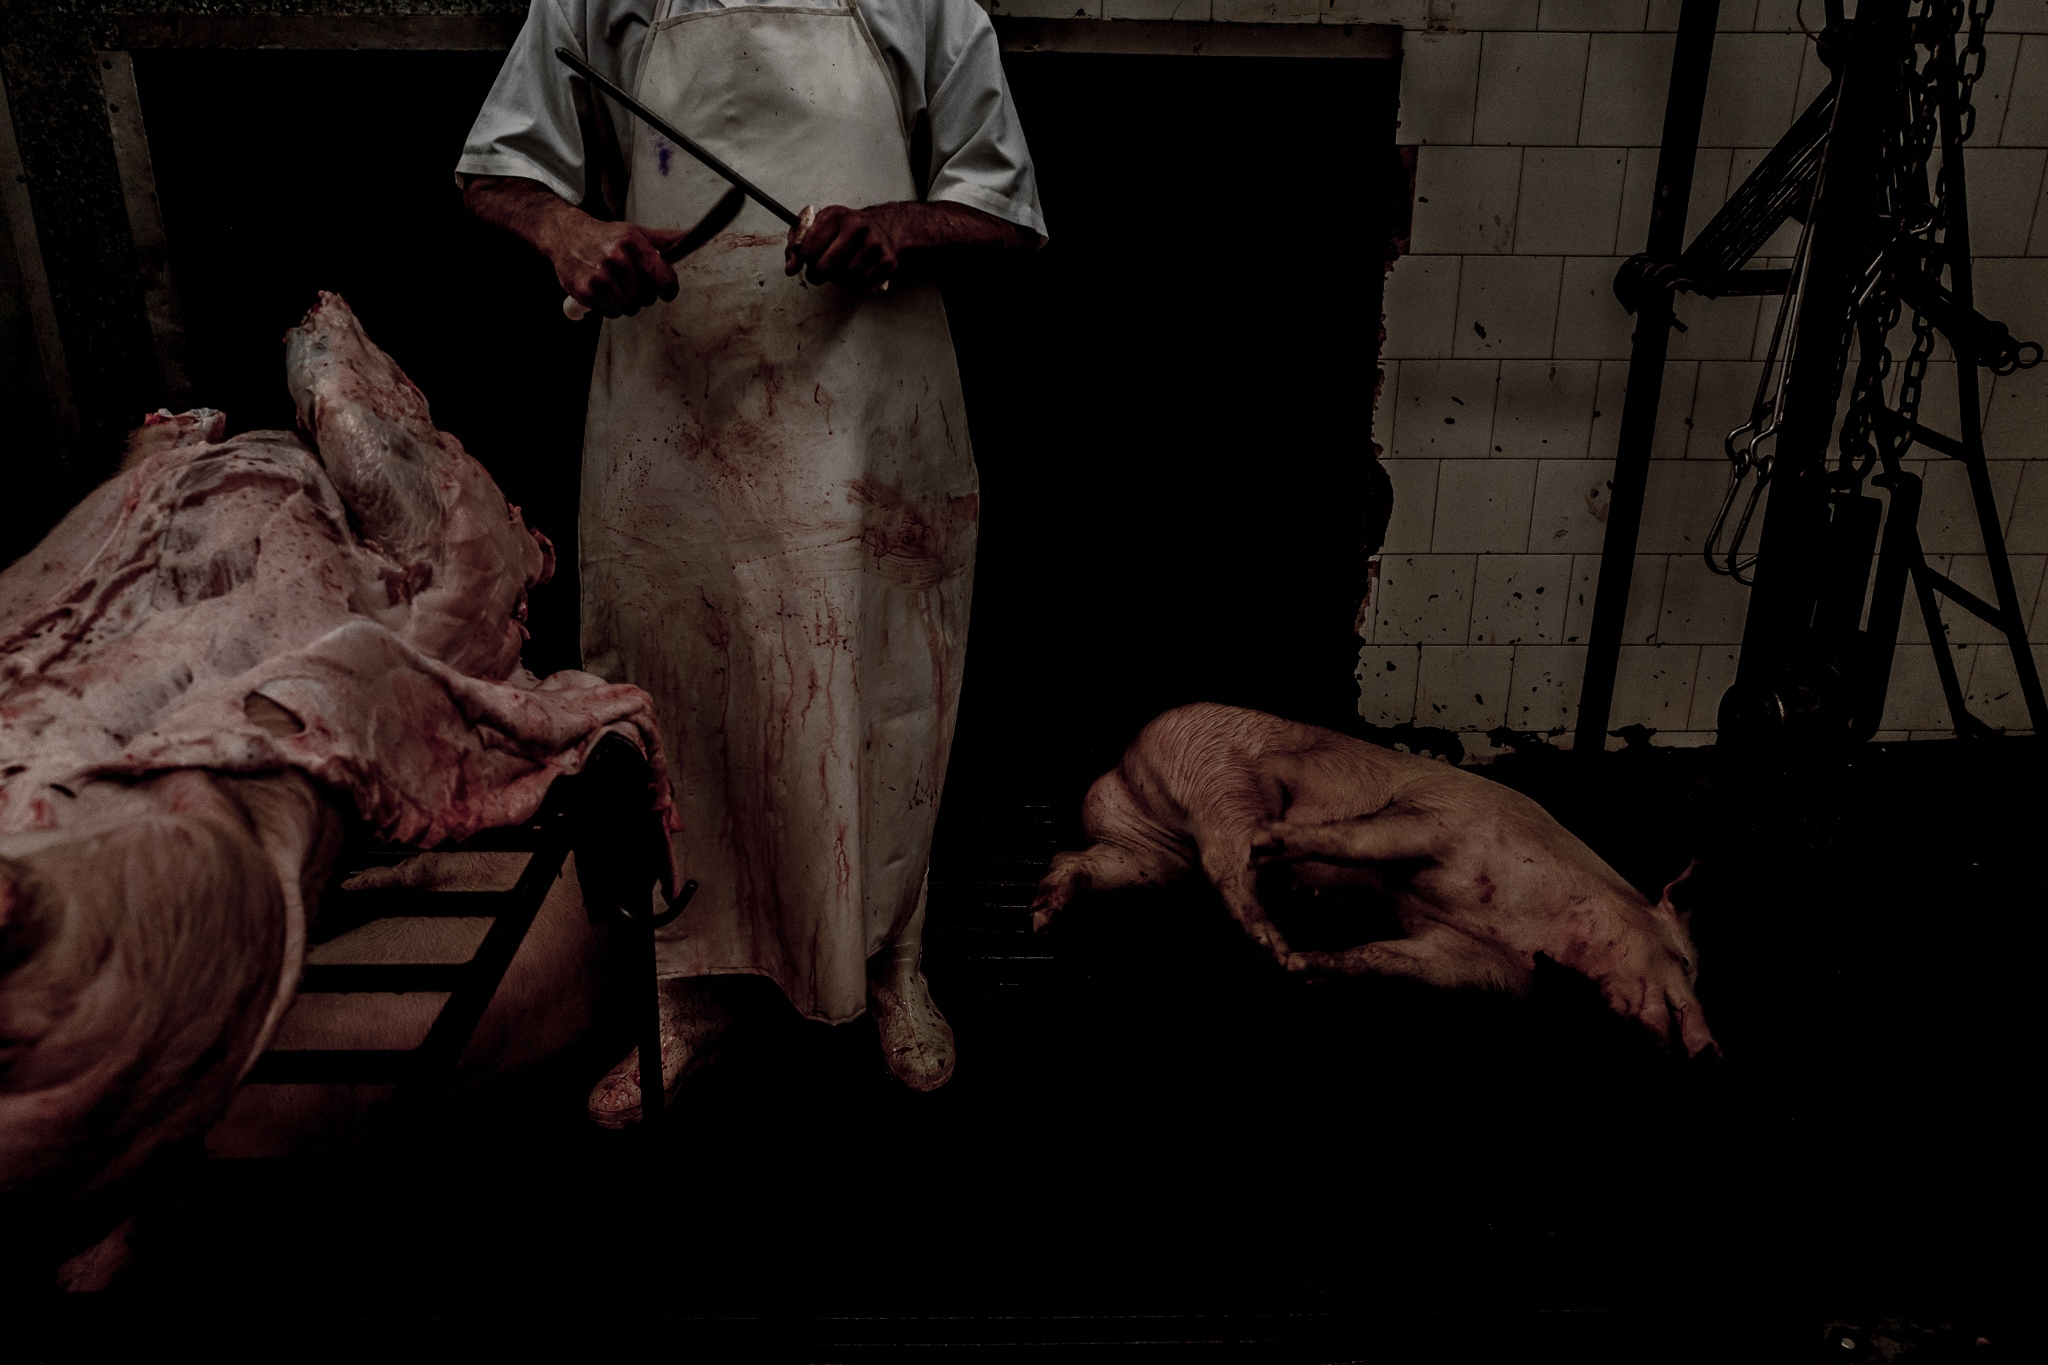 A butcher concludes the slaughter of one more pig. Food security is a major concern on the issue of climate change and the quest for products with lower global warming potential (GWP) is one of the greatest challenges for humanity. Studies show that pork has half the GWP of an ox. Cruzeiro do Sul, Rio Grande Sul, Brazil.